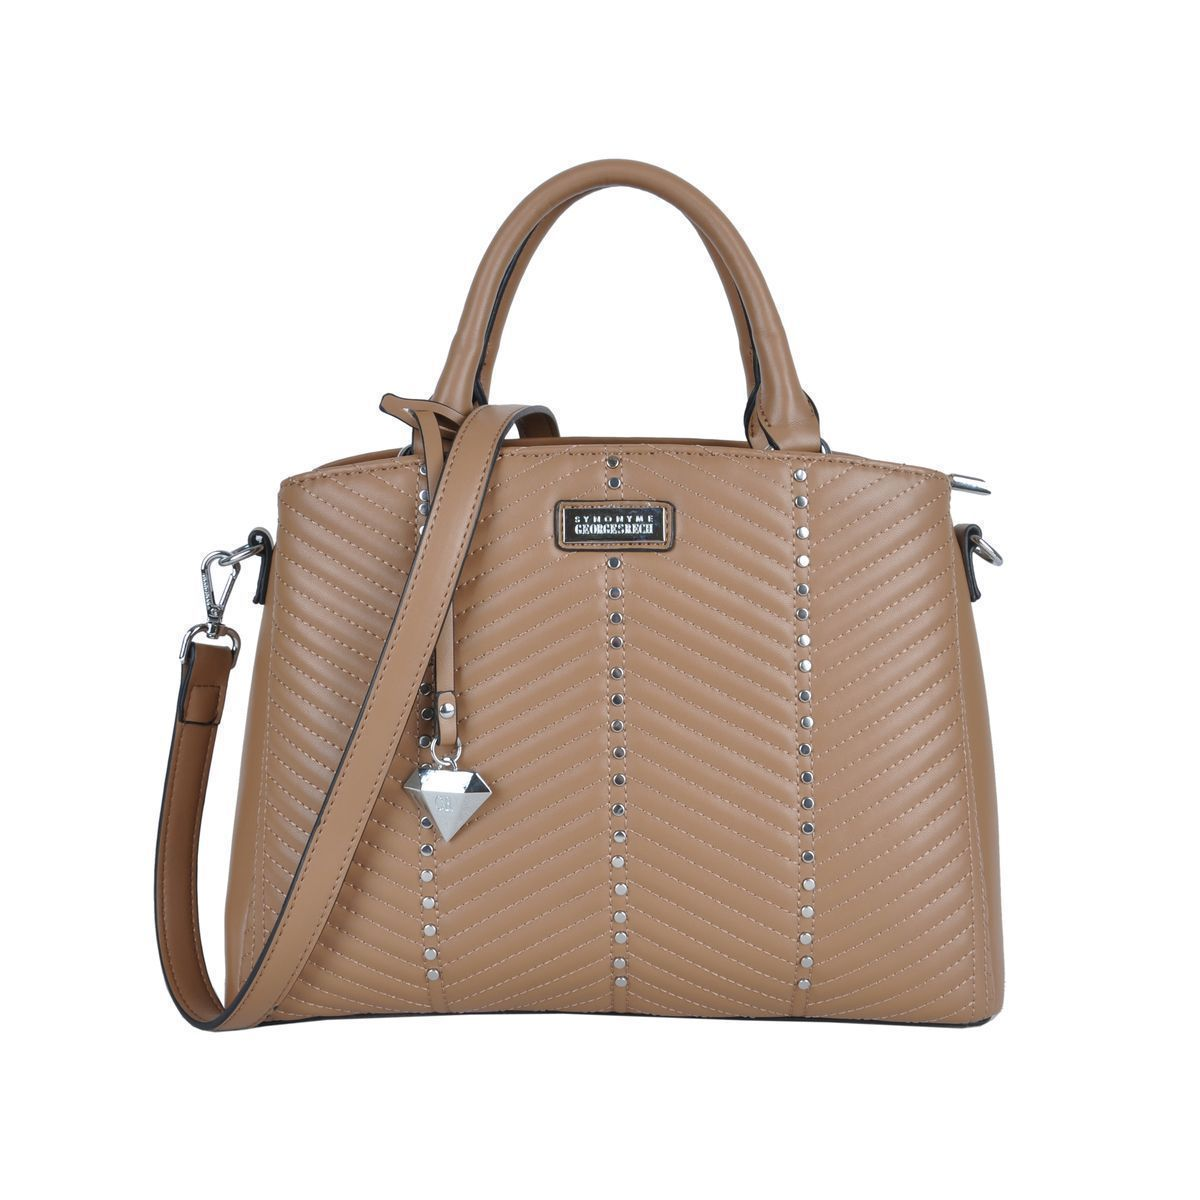 Georges rech femme stephie taupe1715203_2